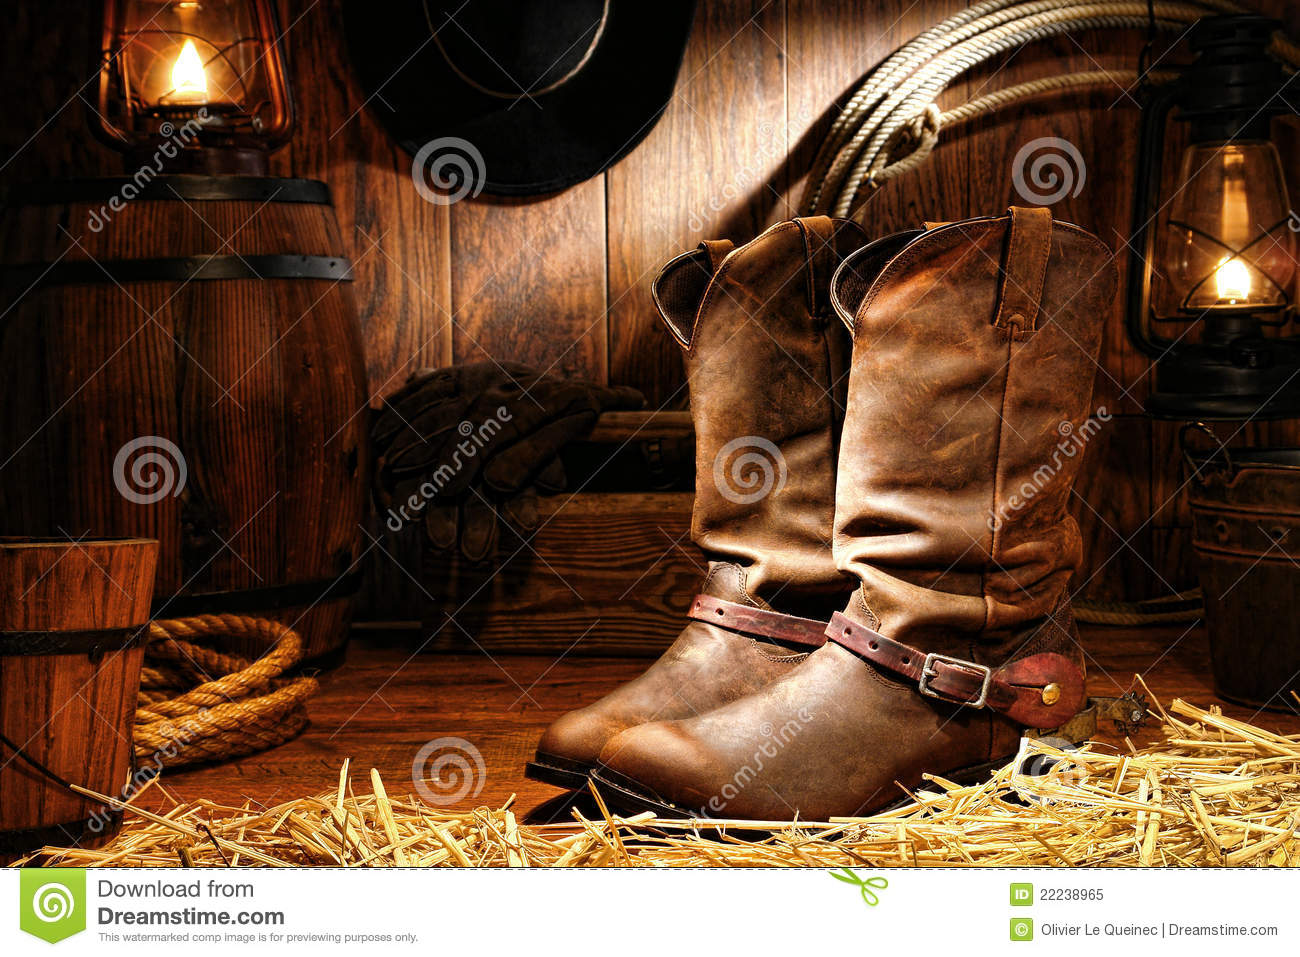 American West Rodeo Cowboy Boots in a Ranch Barn